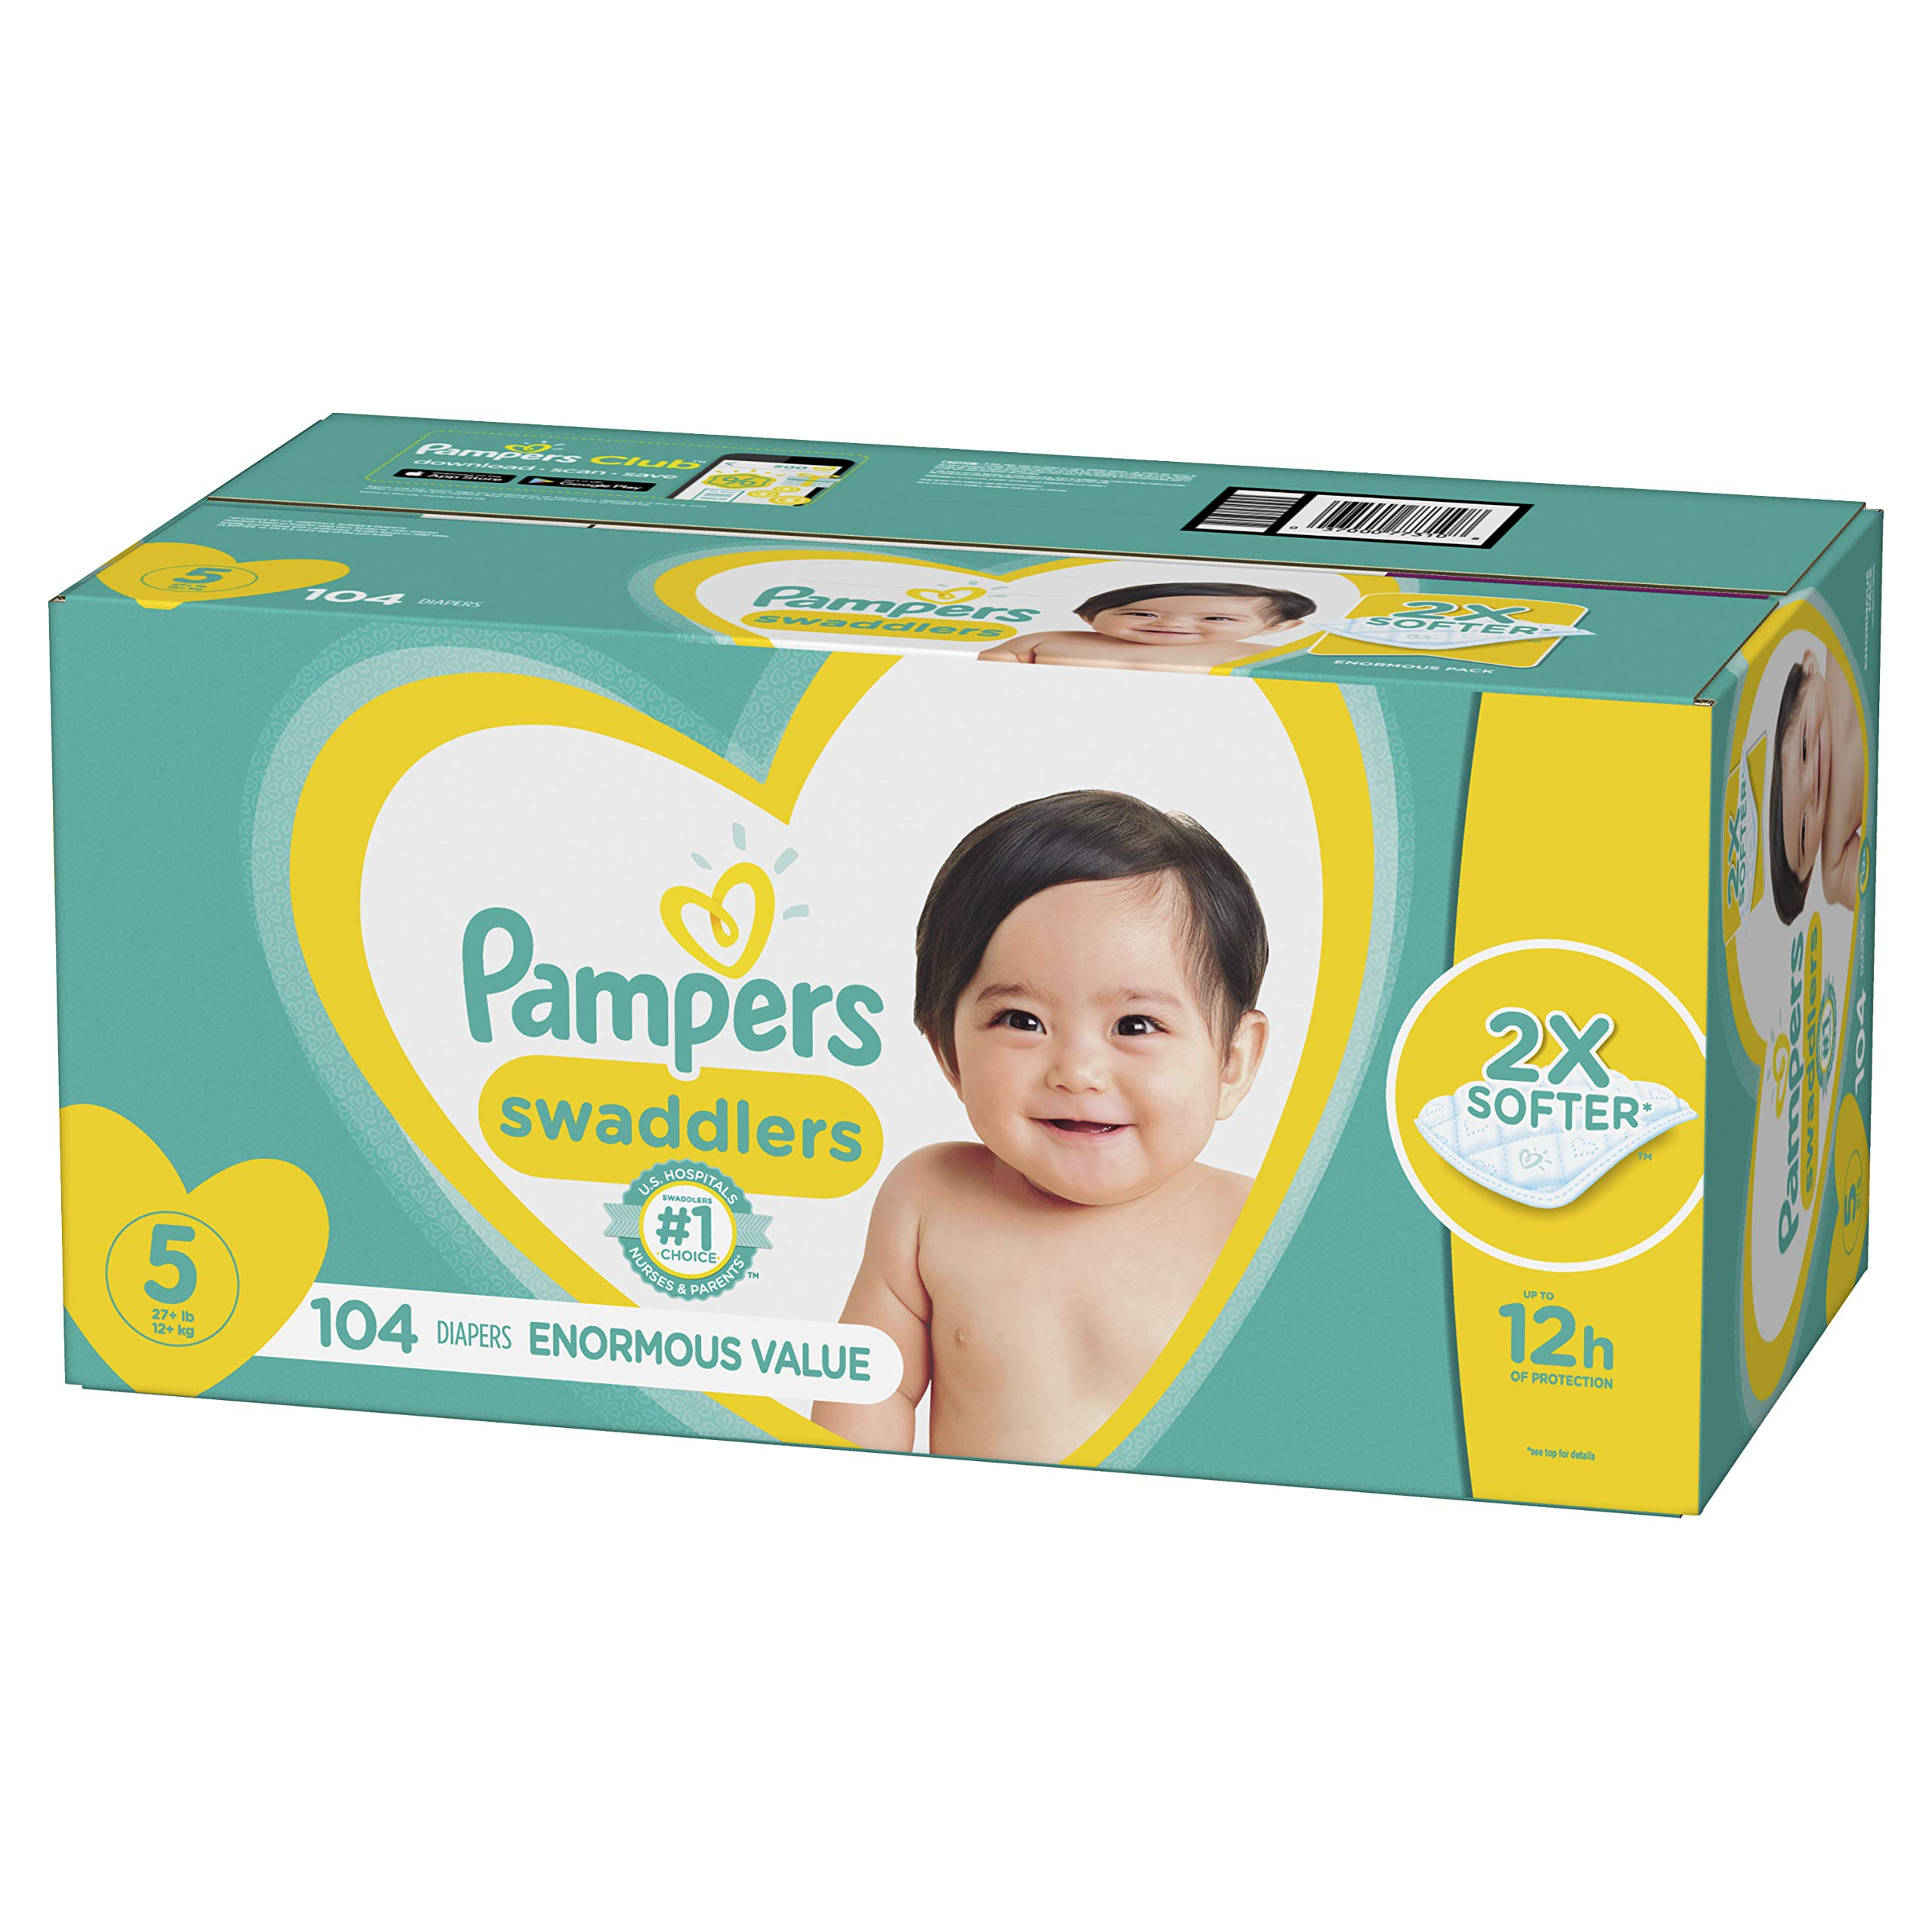 Diapers Size 5, 104 Count - Pampers Swaddlers Disposable Baby Diapers, Enormous Pack by Pampers